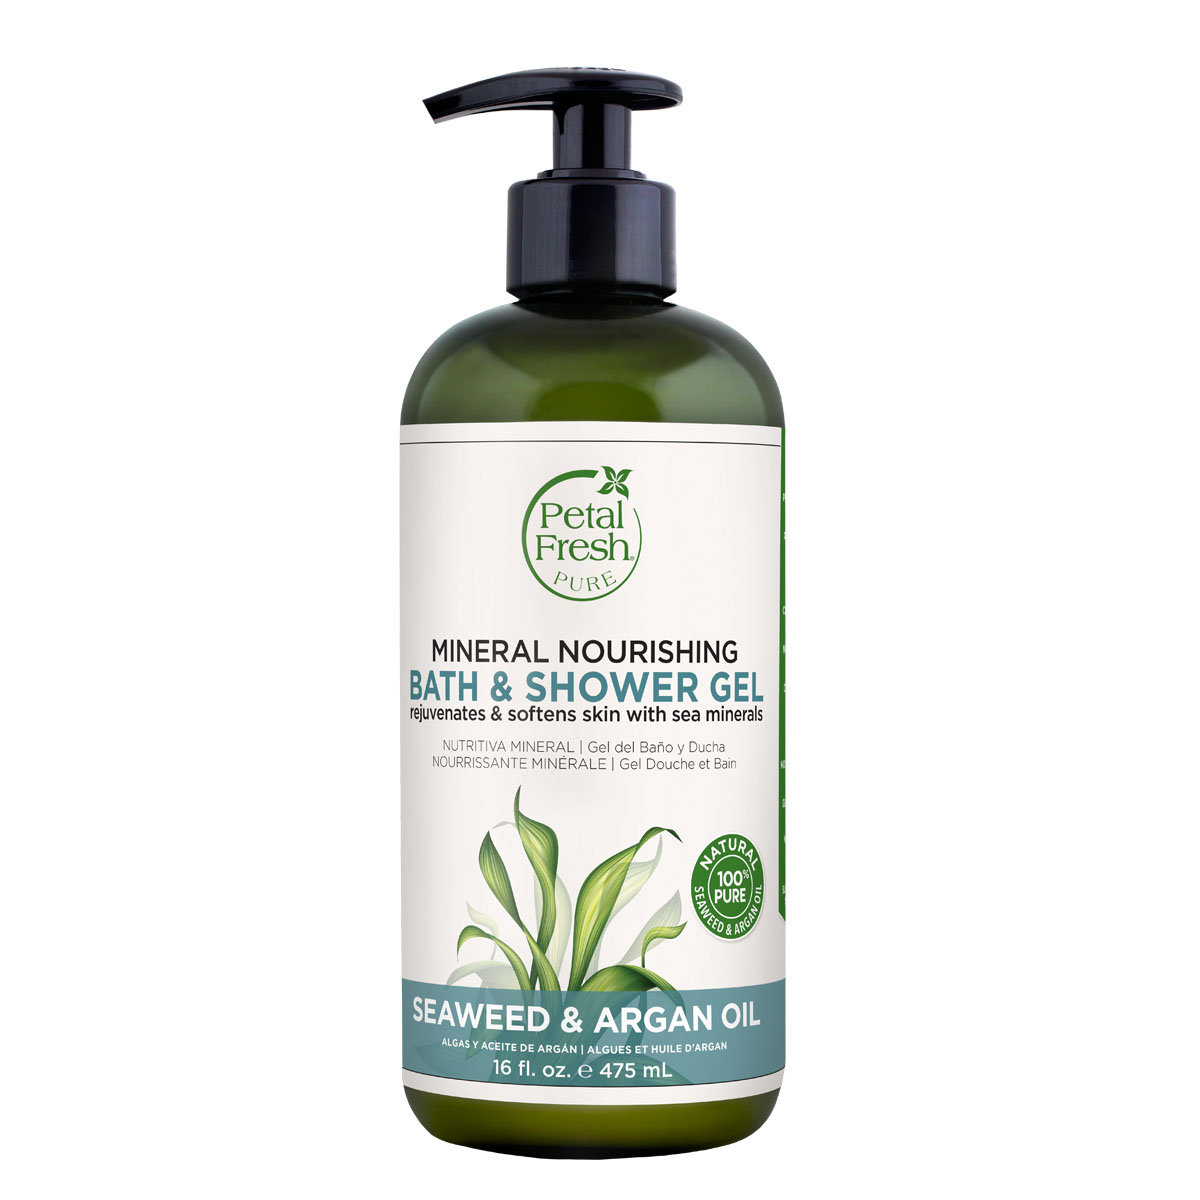 PF Seaweed & Argan Oil Bath & Shower Gel